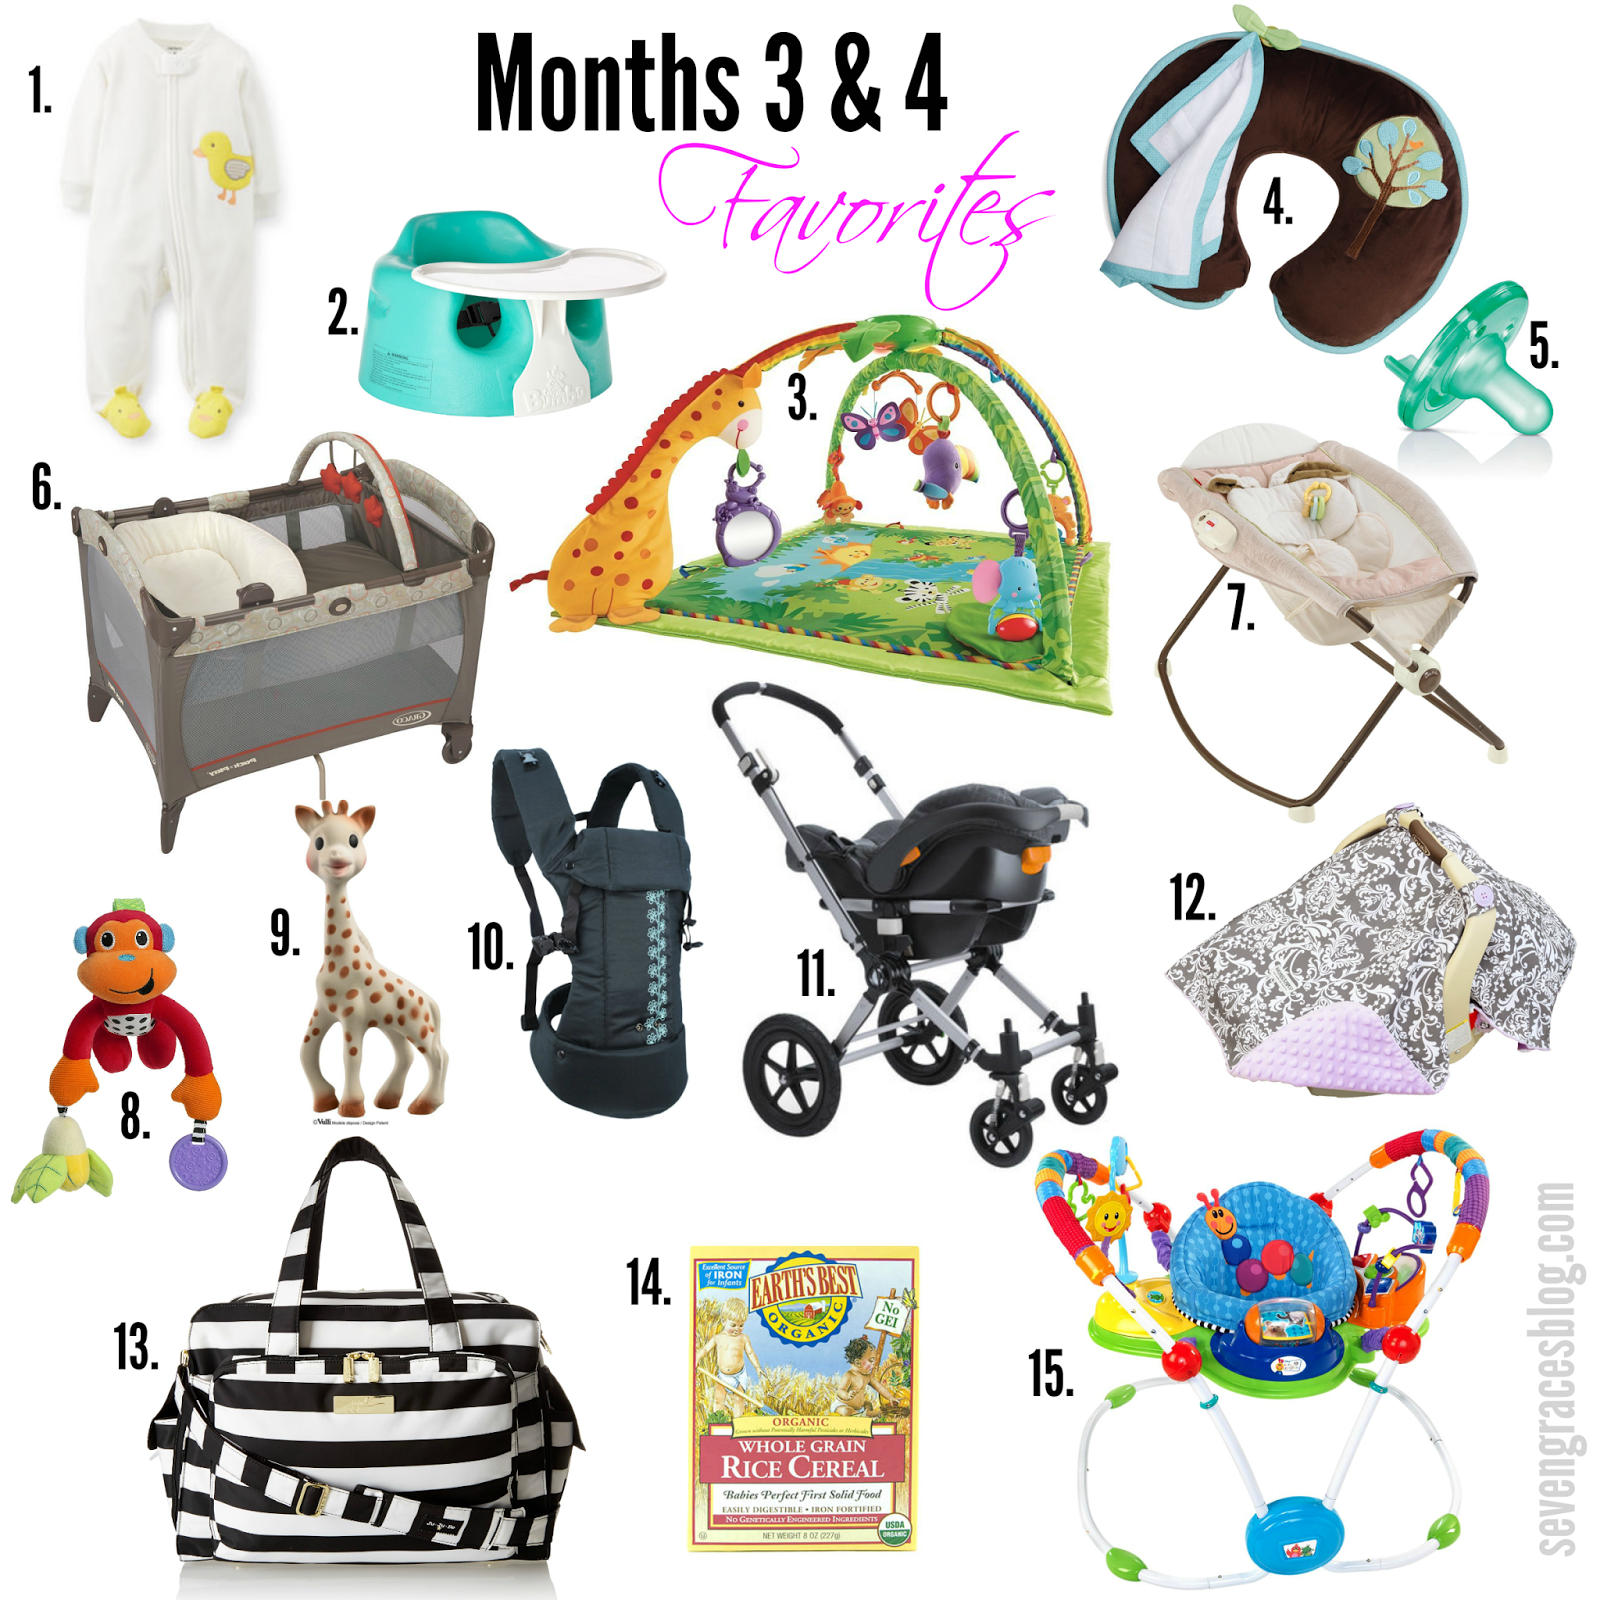 Top 15 Baby Items for Months 3 & 4